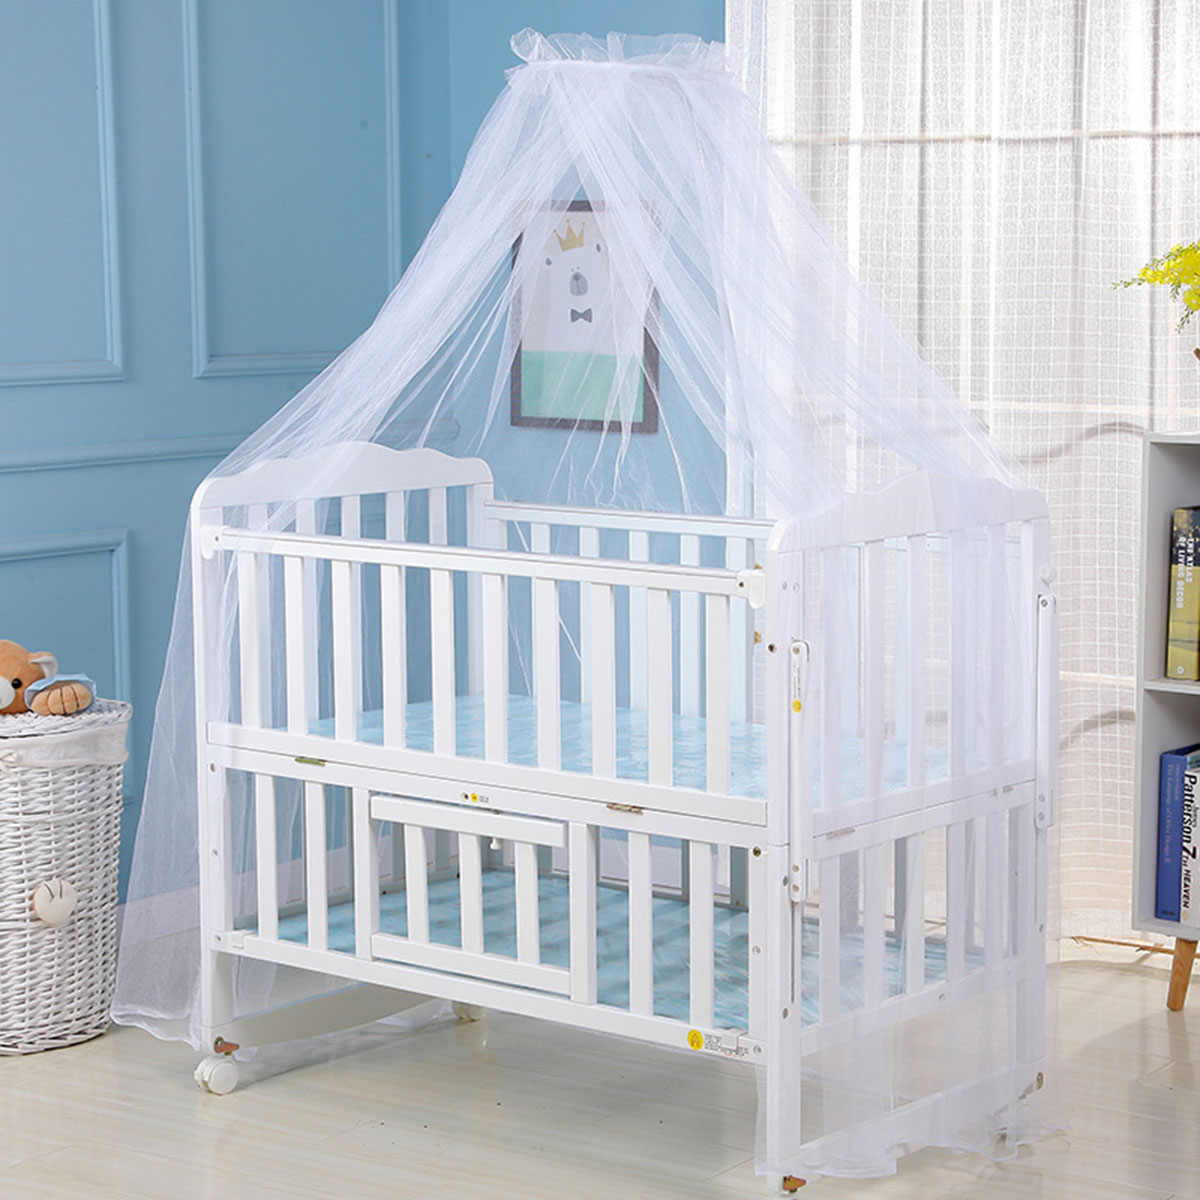 Mosquito Net Hot Selling Baby Bed Mosquito Net Mesh Dome Curtain Net for Toddler Crib Cot Canopy 2019 Blue white Color Dropshipp